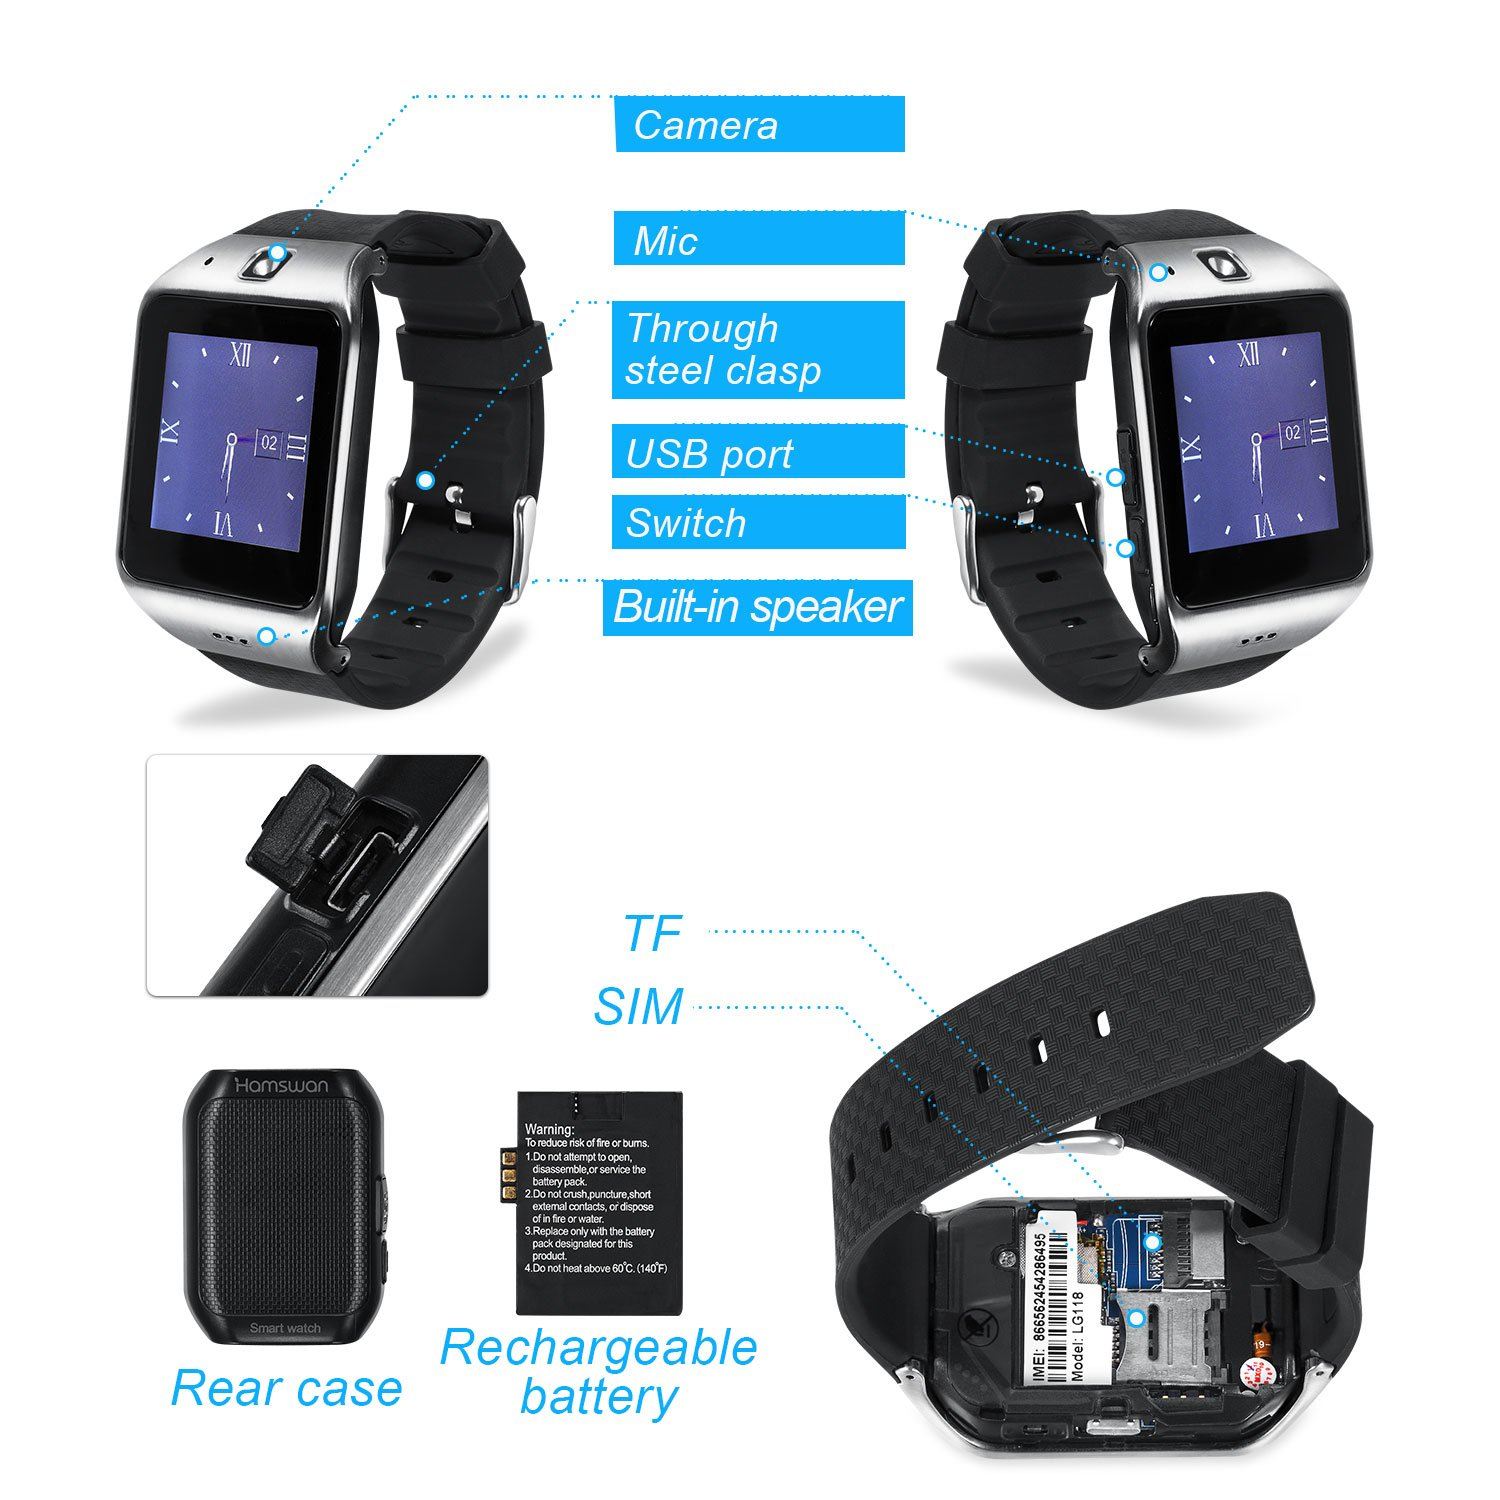 Bluetooth Smartwatch with Camera, EasySMX LG118 Smartwatch Cell Phone with Sim Card Slot, All in 1 Touch Screen Watch for iPhone, Android Samsung ...